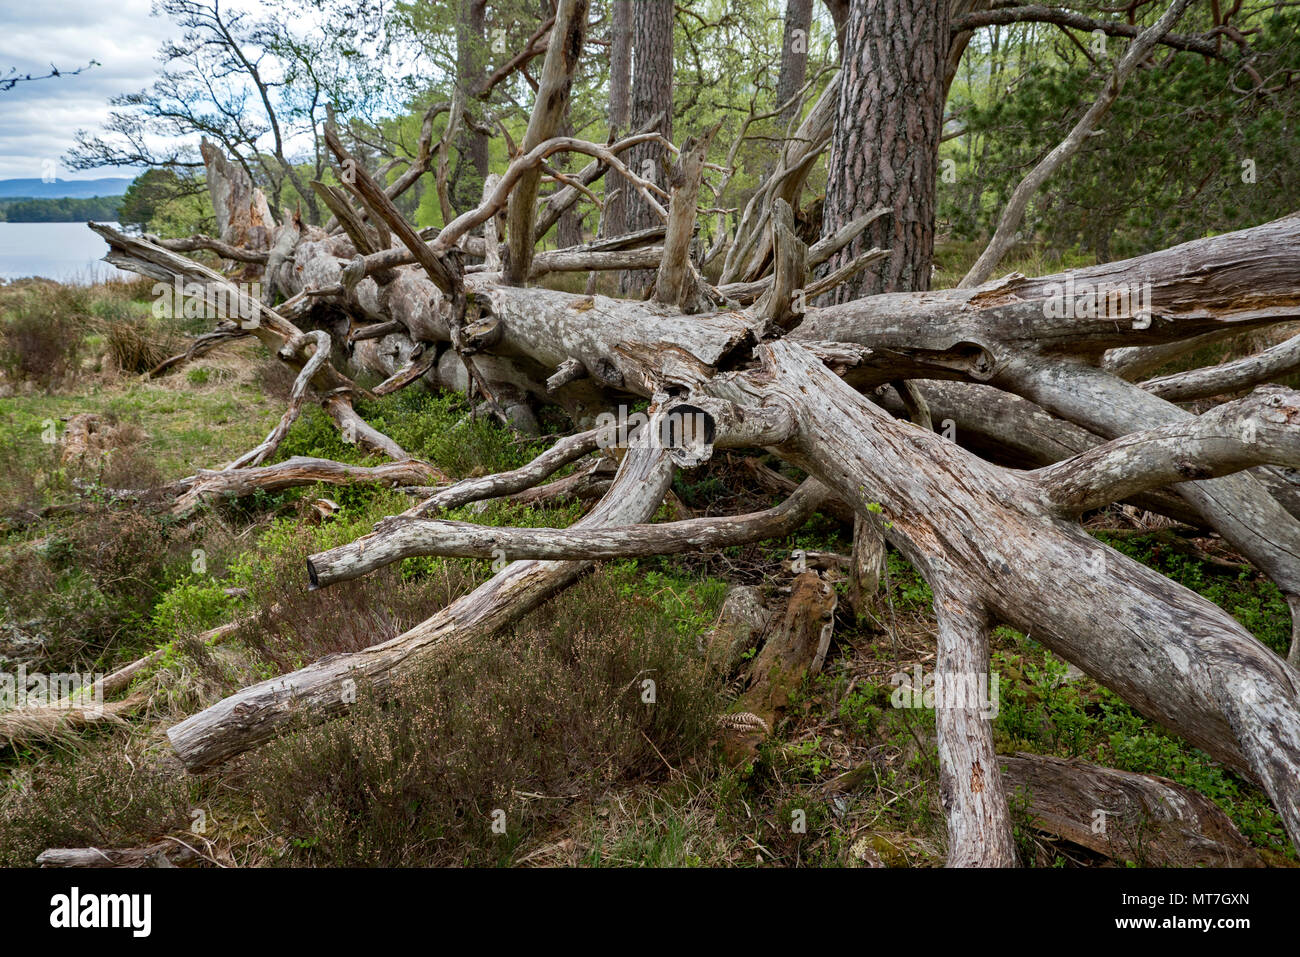 Fallen dead tree on the banks of Loch an Eilein near Aviemore in Cairngorms National Park, Scotland, UK. - Stock Image